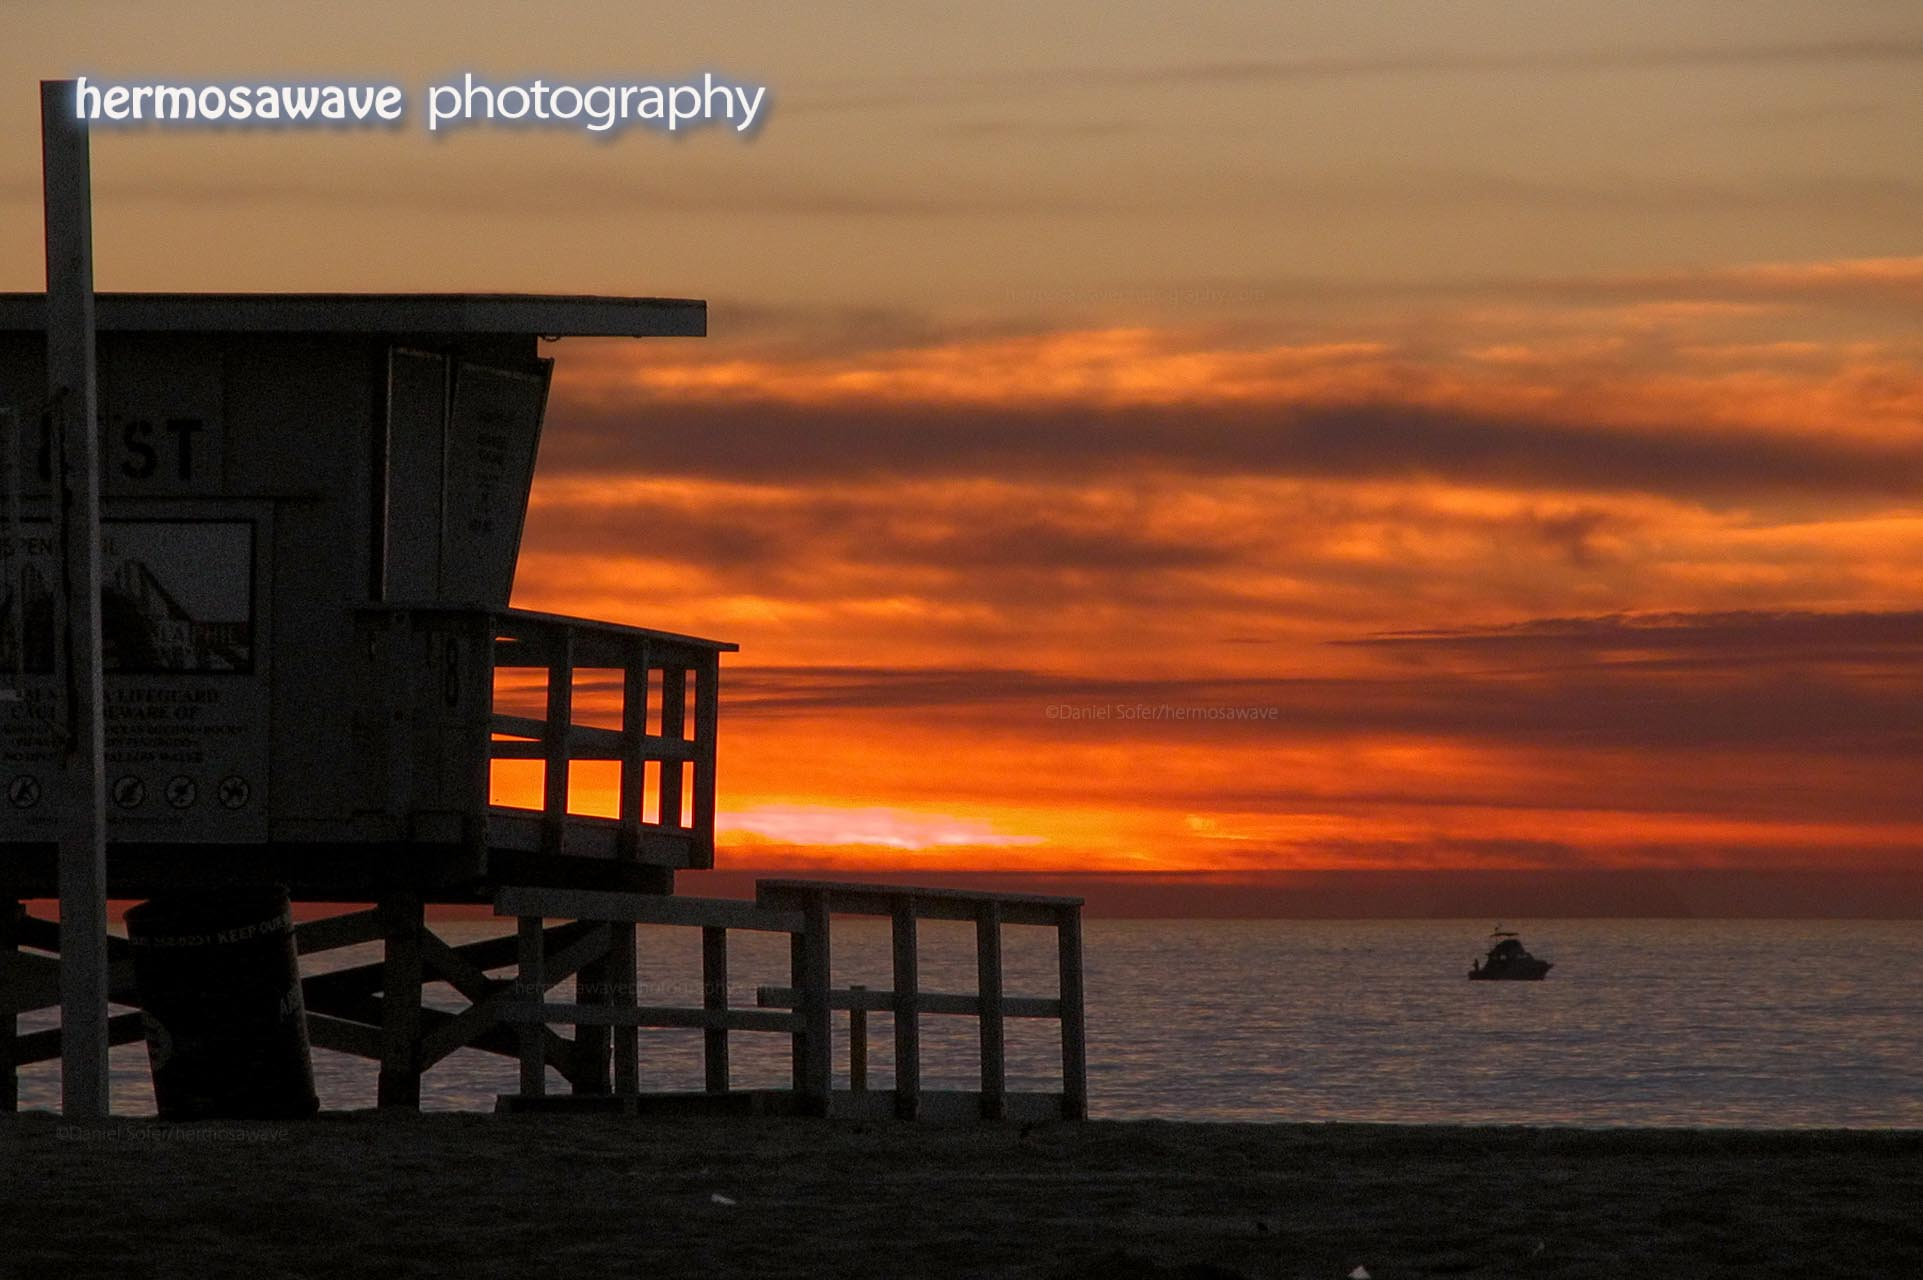 Sunset with Lifeguard Tower